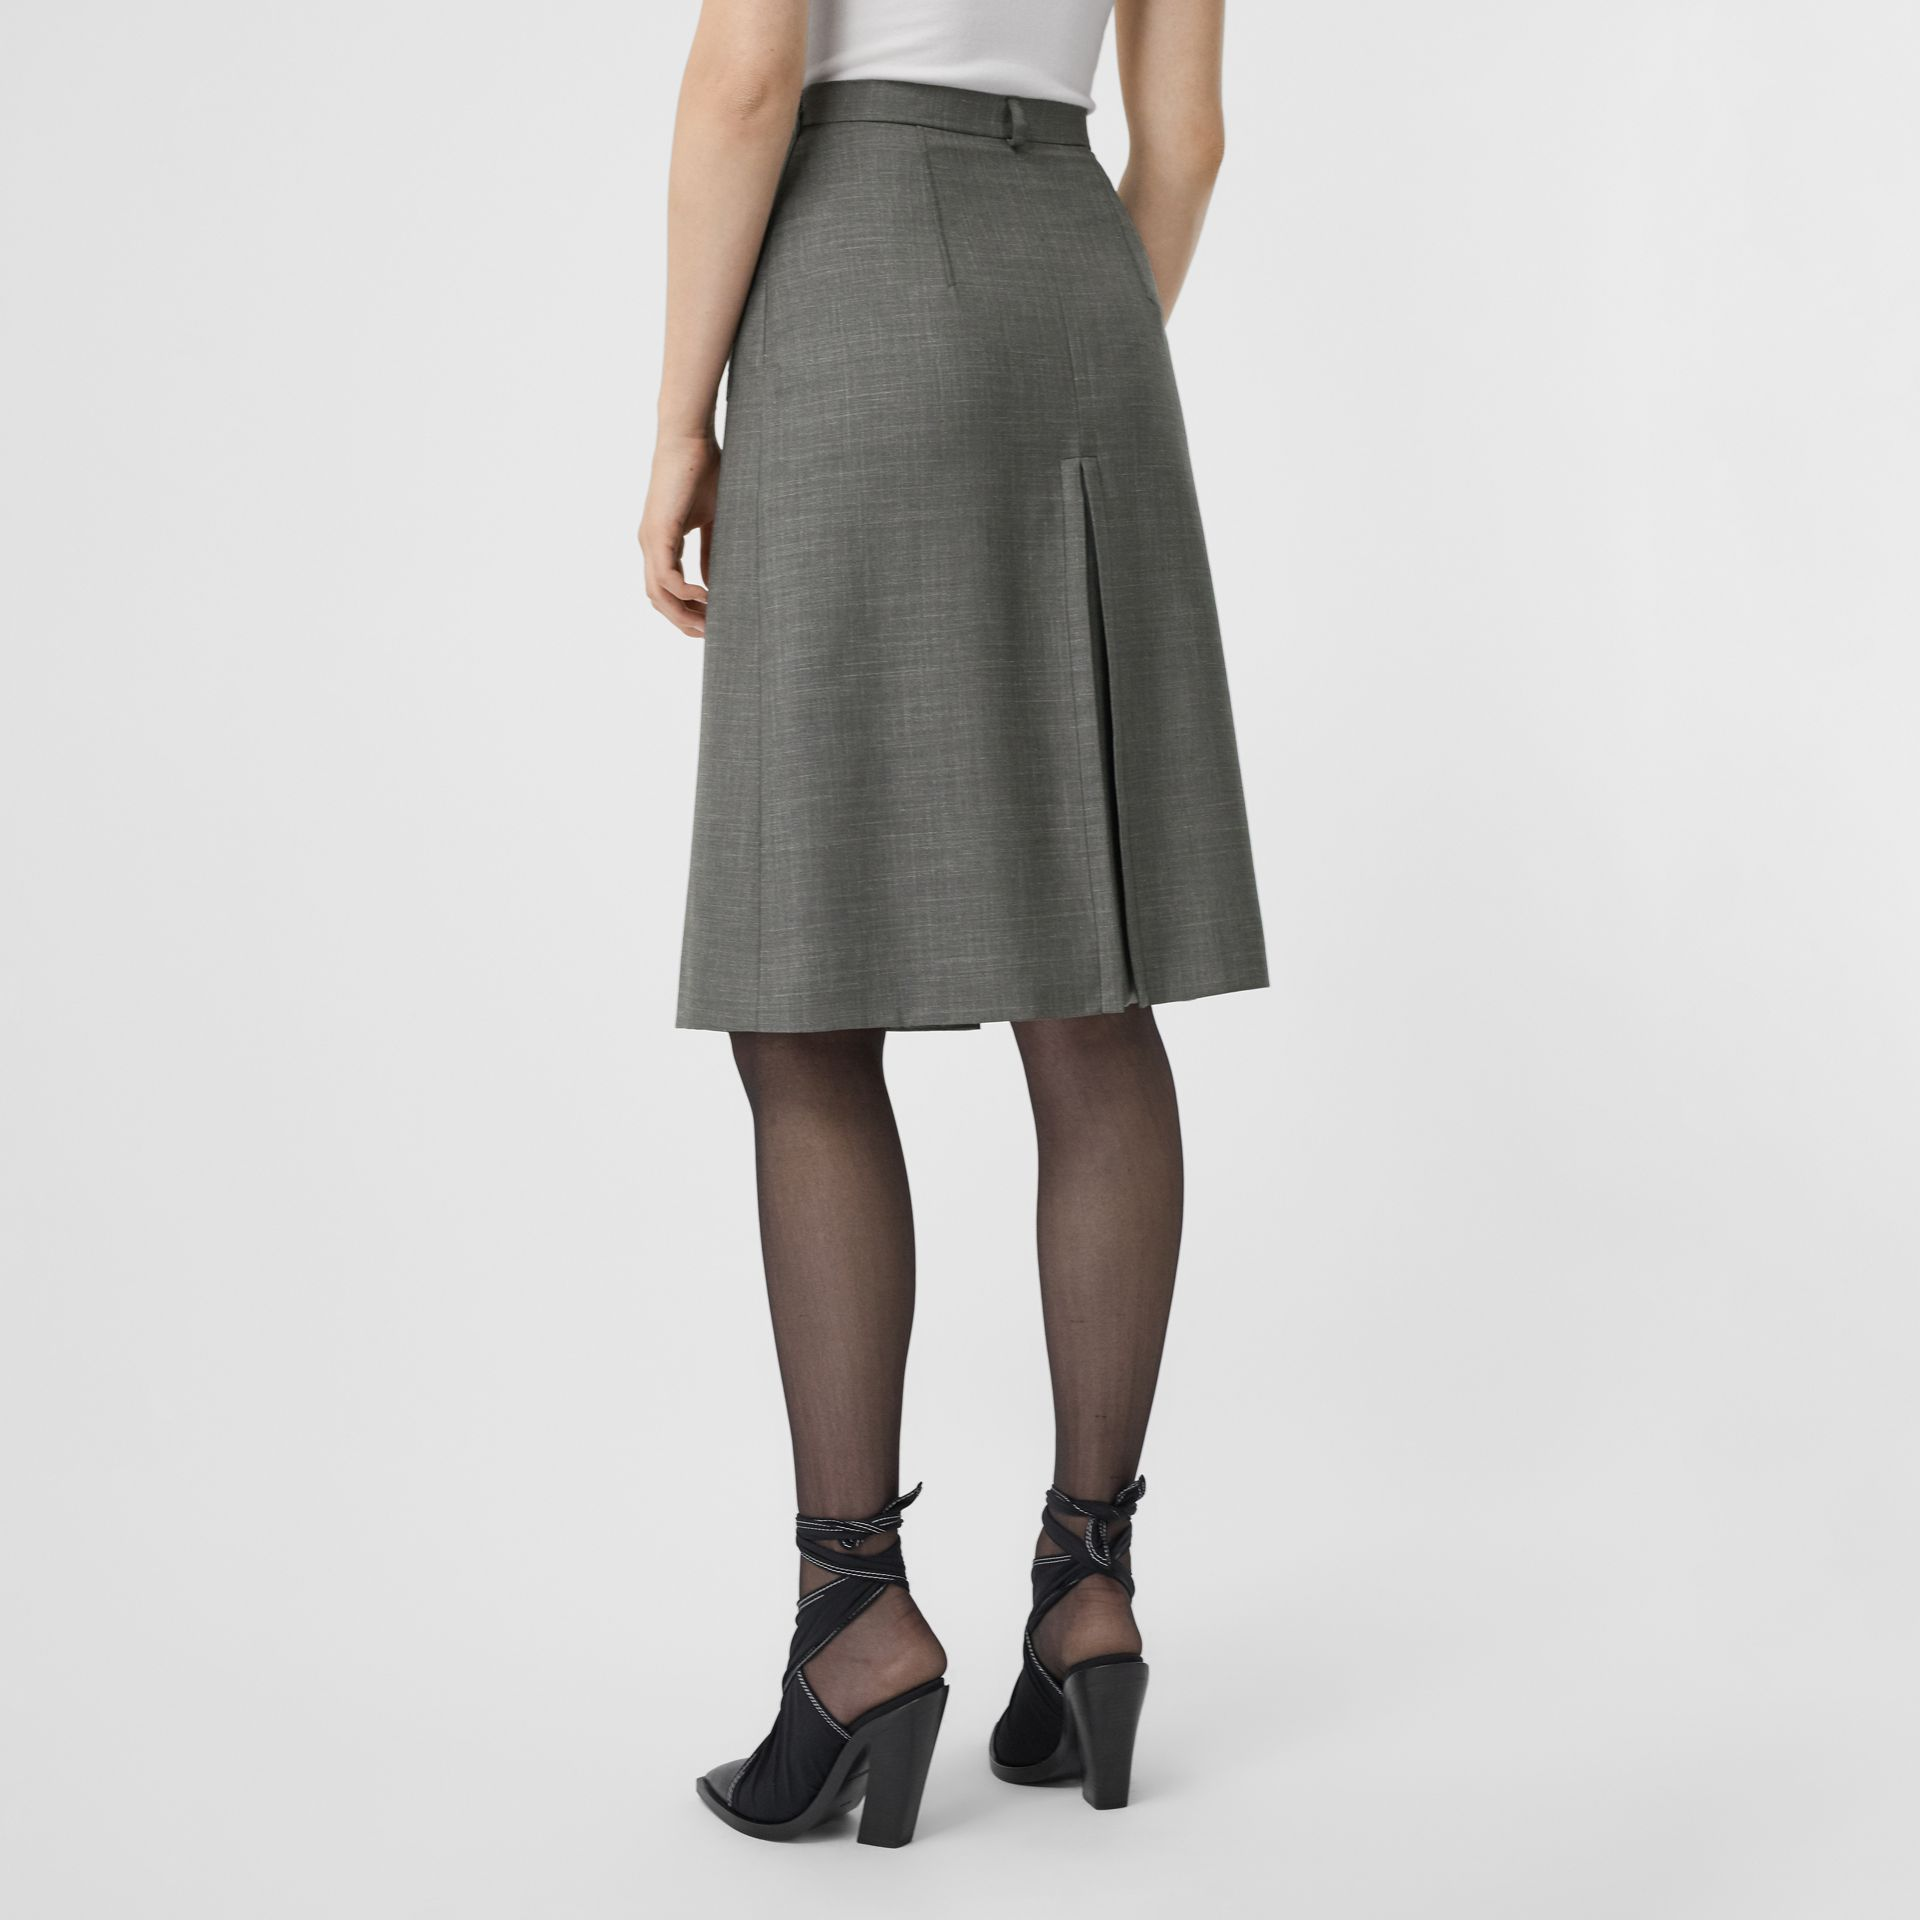 Box-pleat Detail Wool Silk Blend A-line Skirt in Charcoal Grey - Women | Burberry - gallery image 2